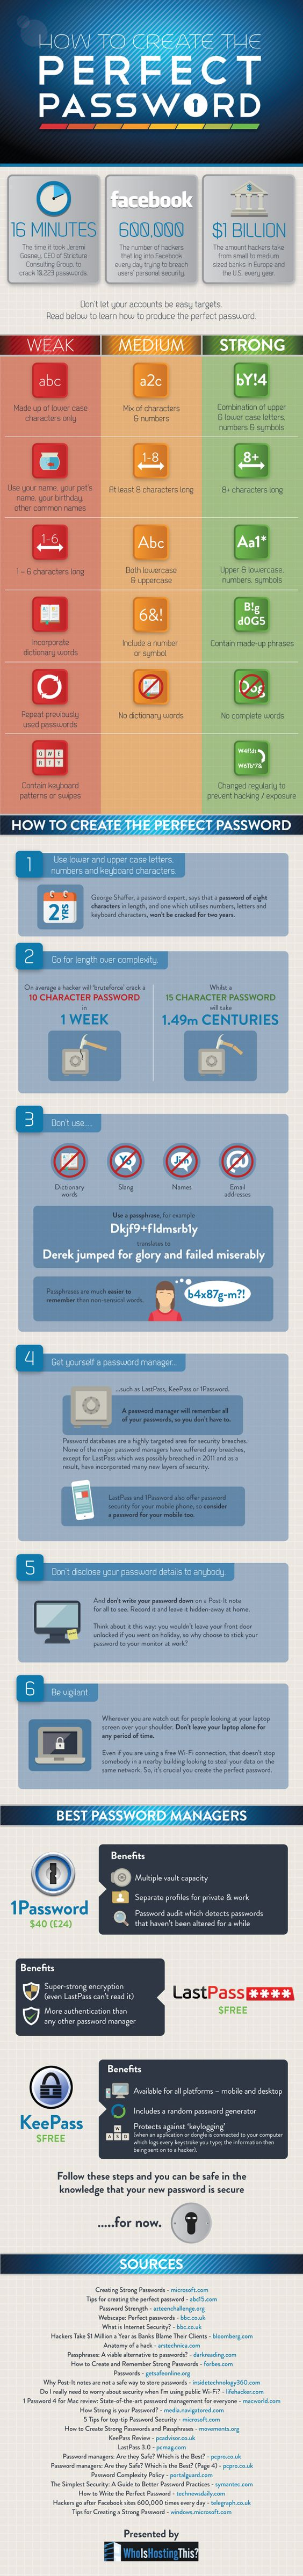 How to Create the Perfect Password [Infographic]